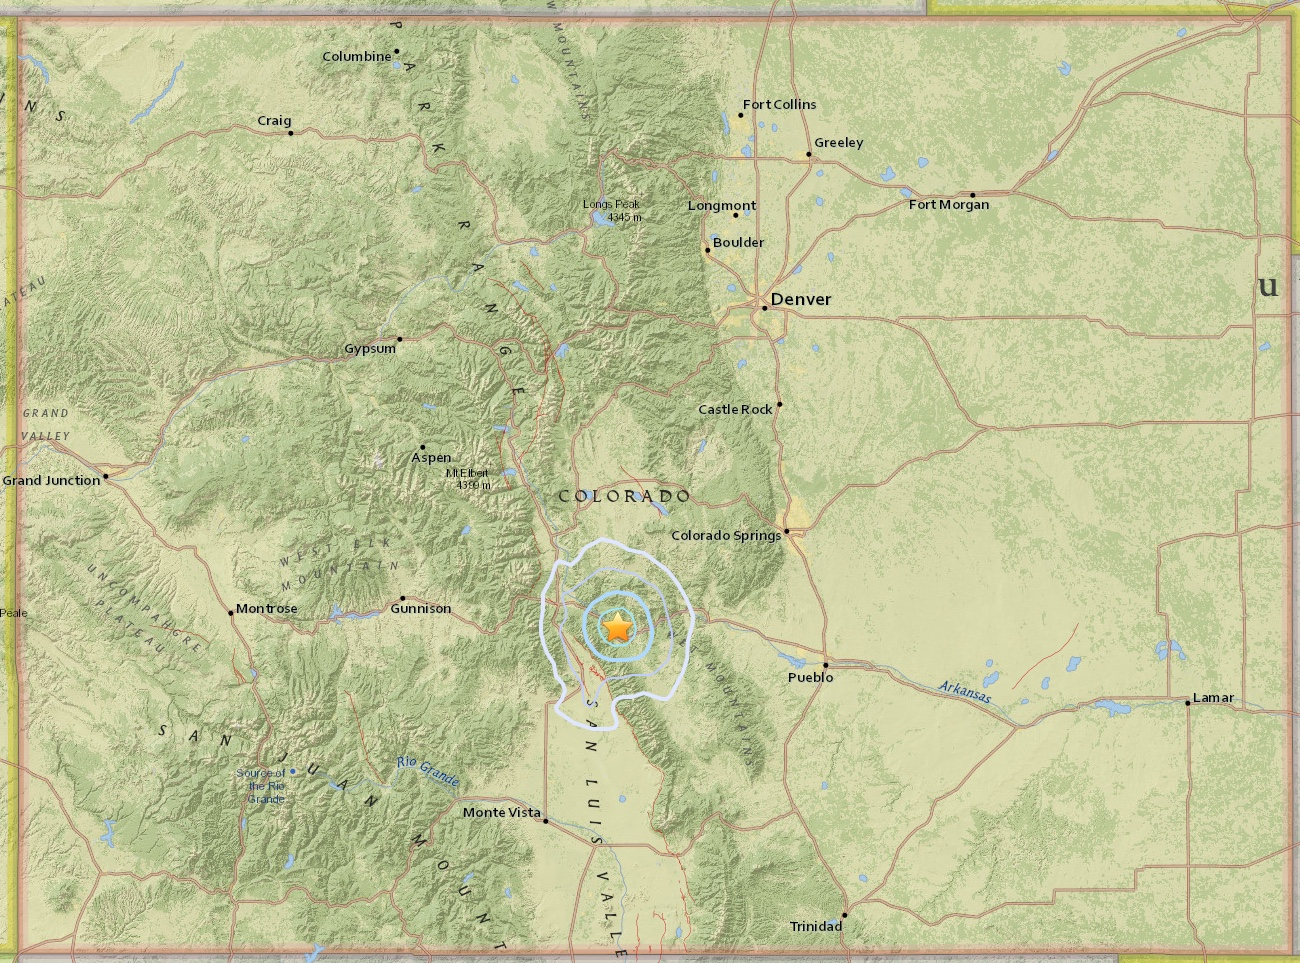 MAP - Earthquake - Salida - November 30, 2017